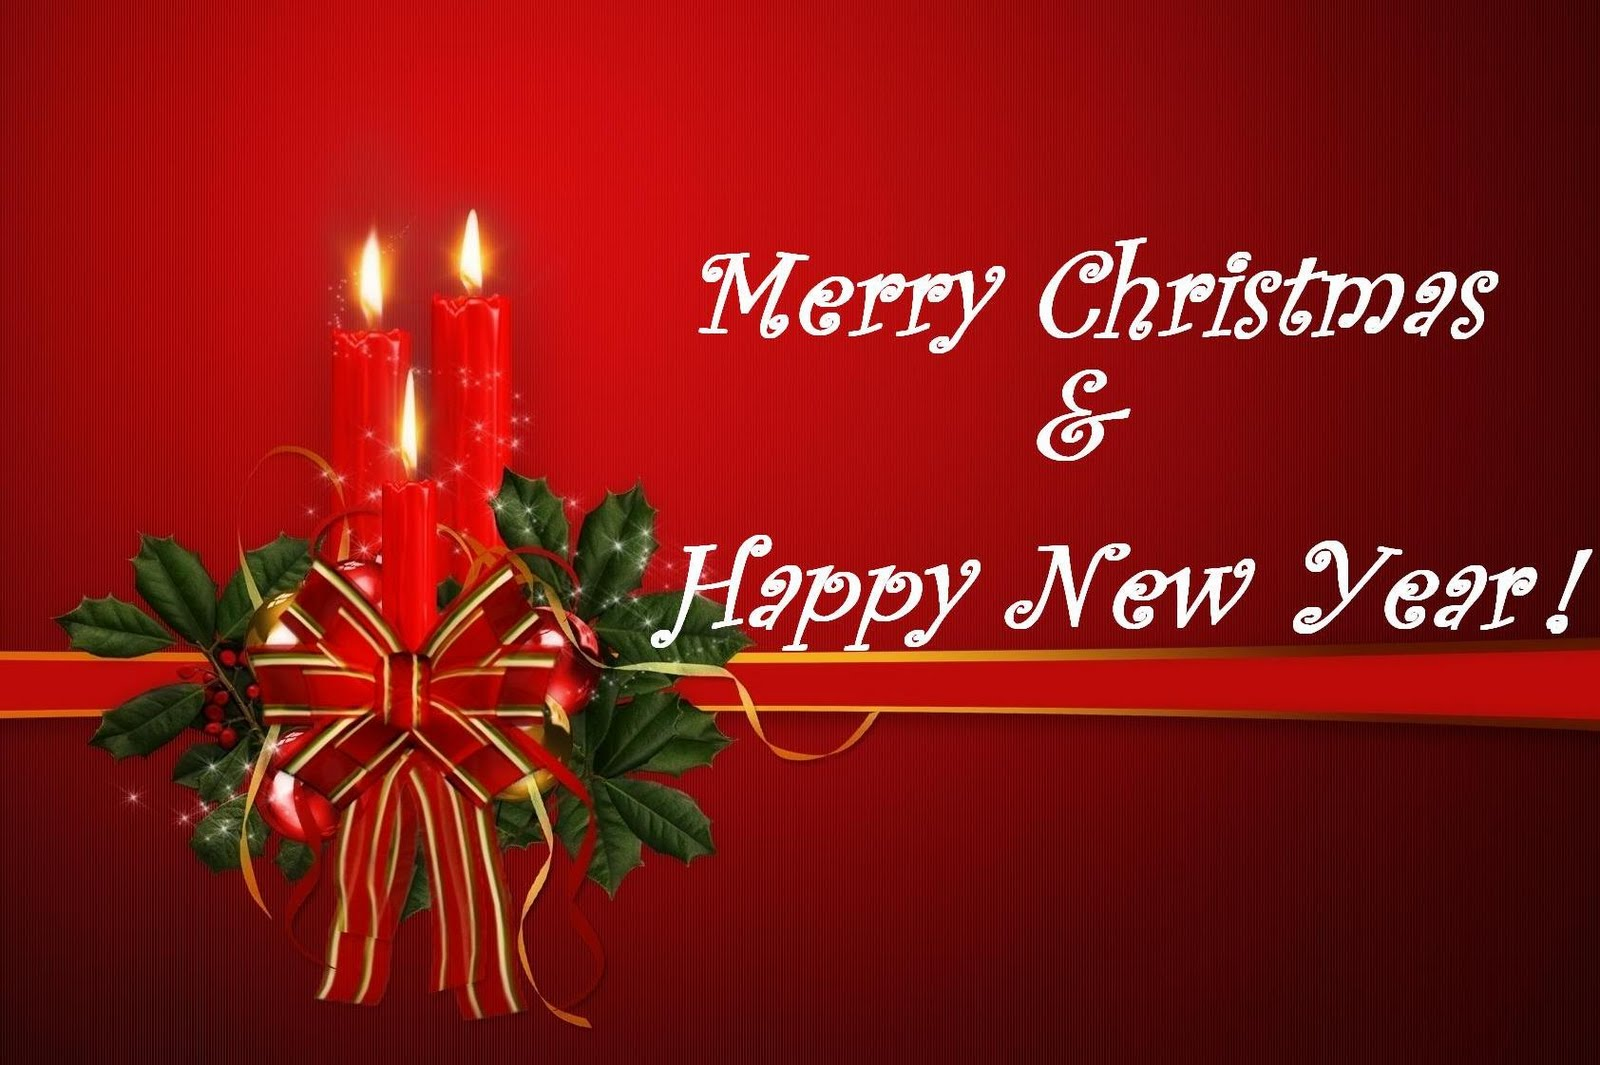 Merry christmas and happy new year sms